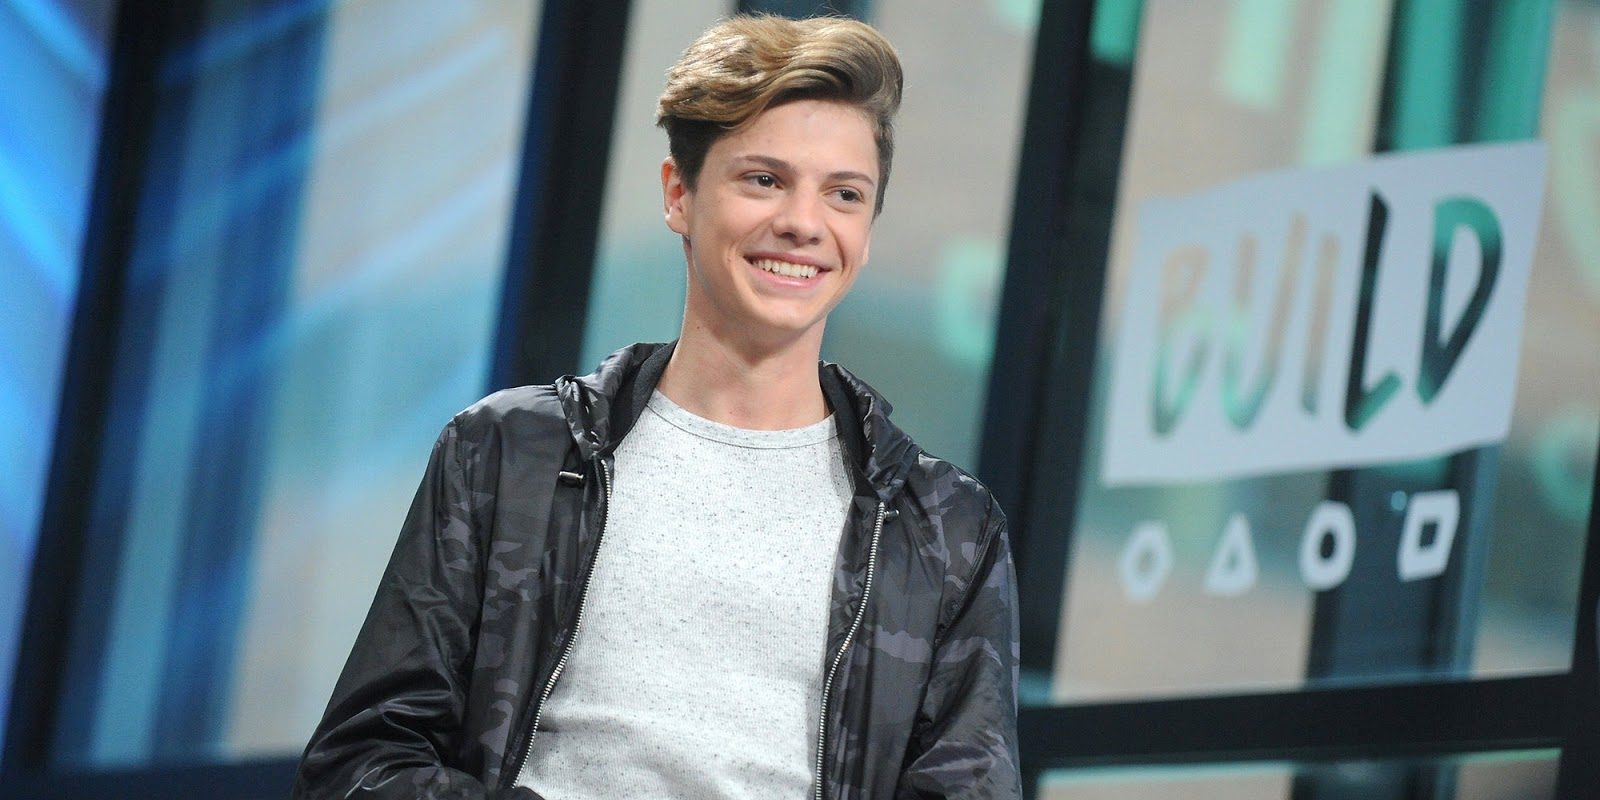 NickALive!: Jace Norman Talks Superheroes And Growing Up On